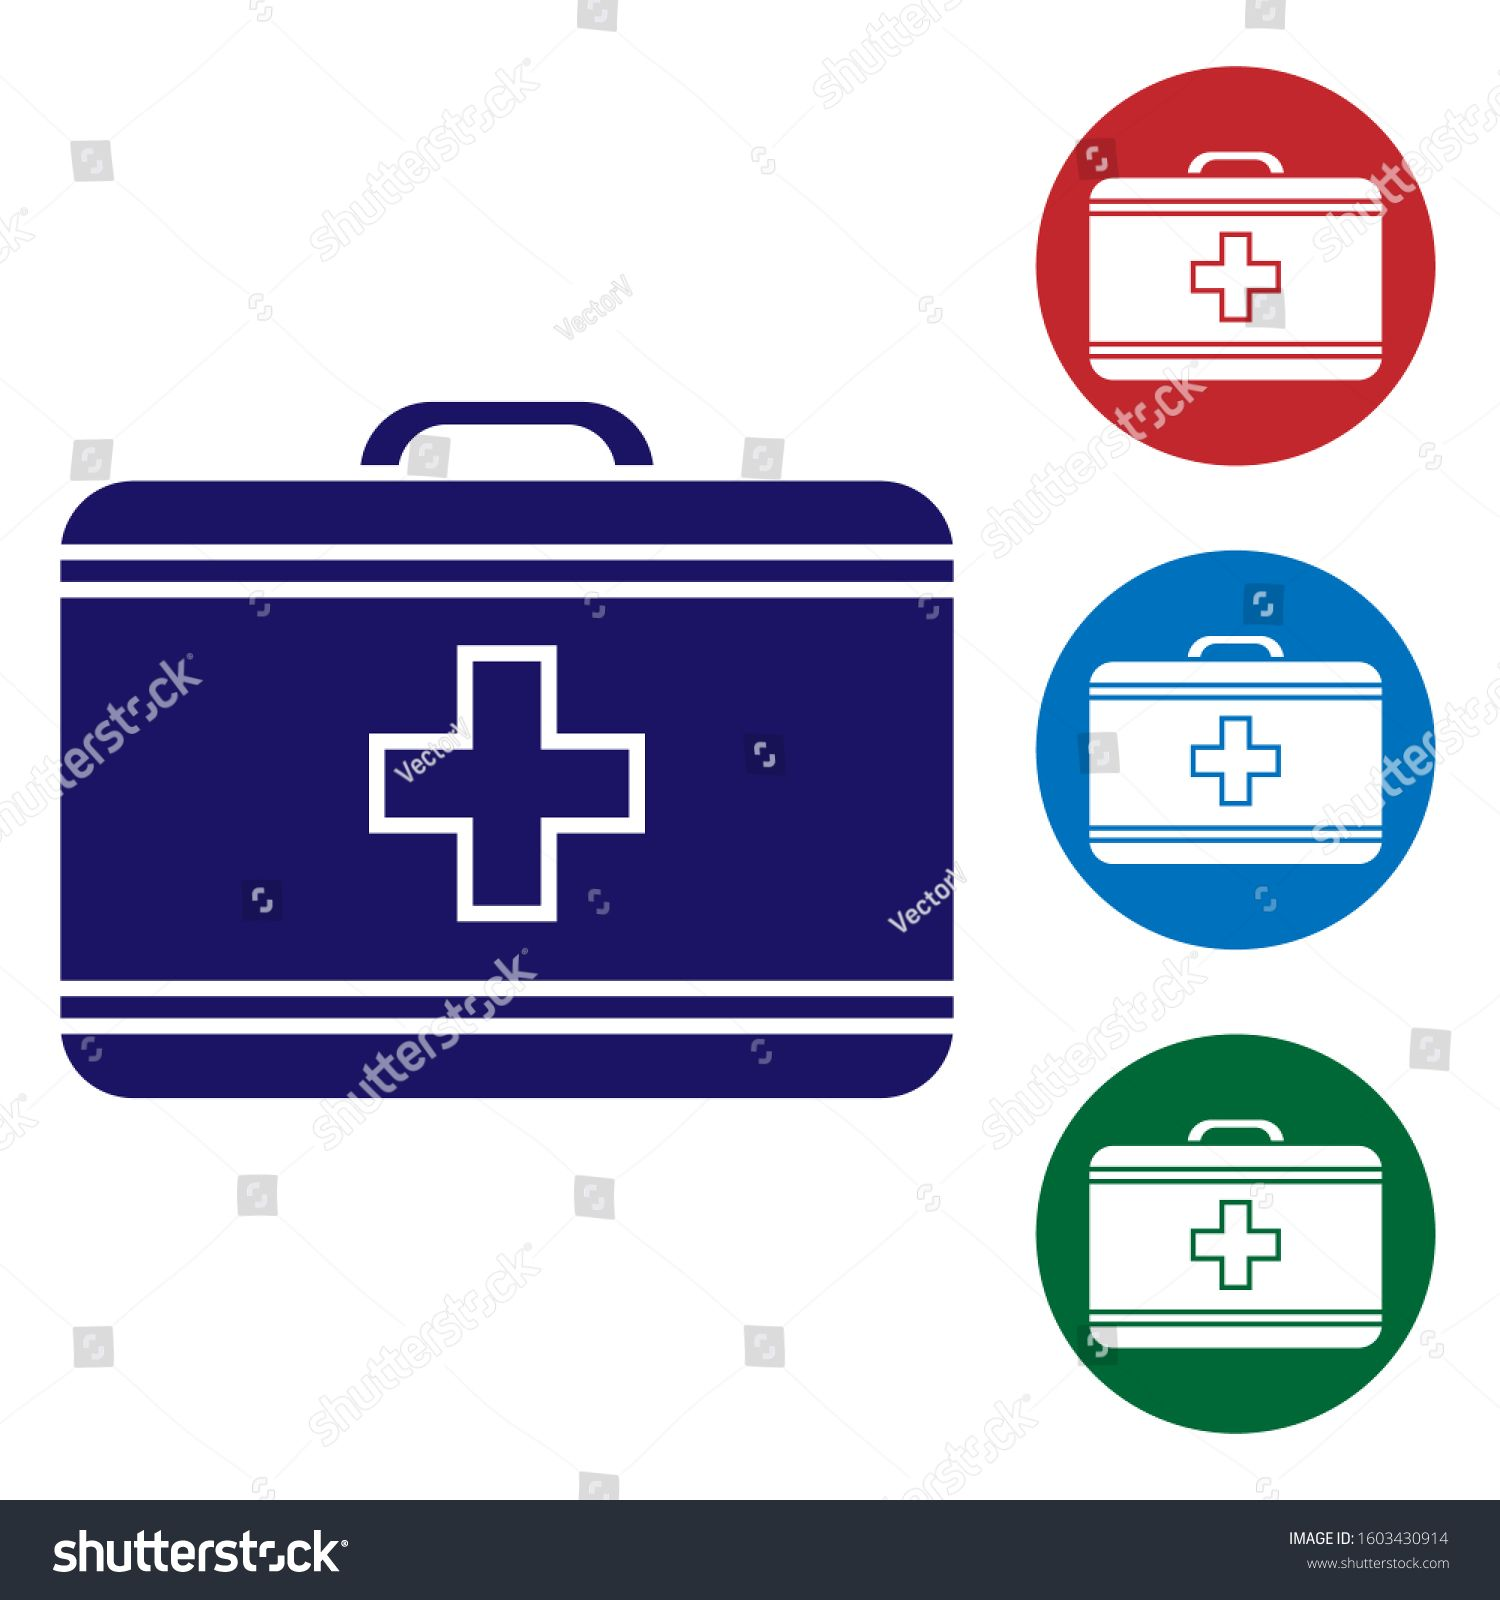 Blue First Aid Kit Icon Isolated On White Background Medical Box With Cross Medical Equipment For Emergency Healthcare Infographic Design First Aid Kit Icon